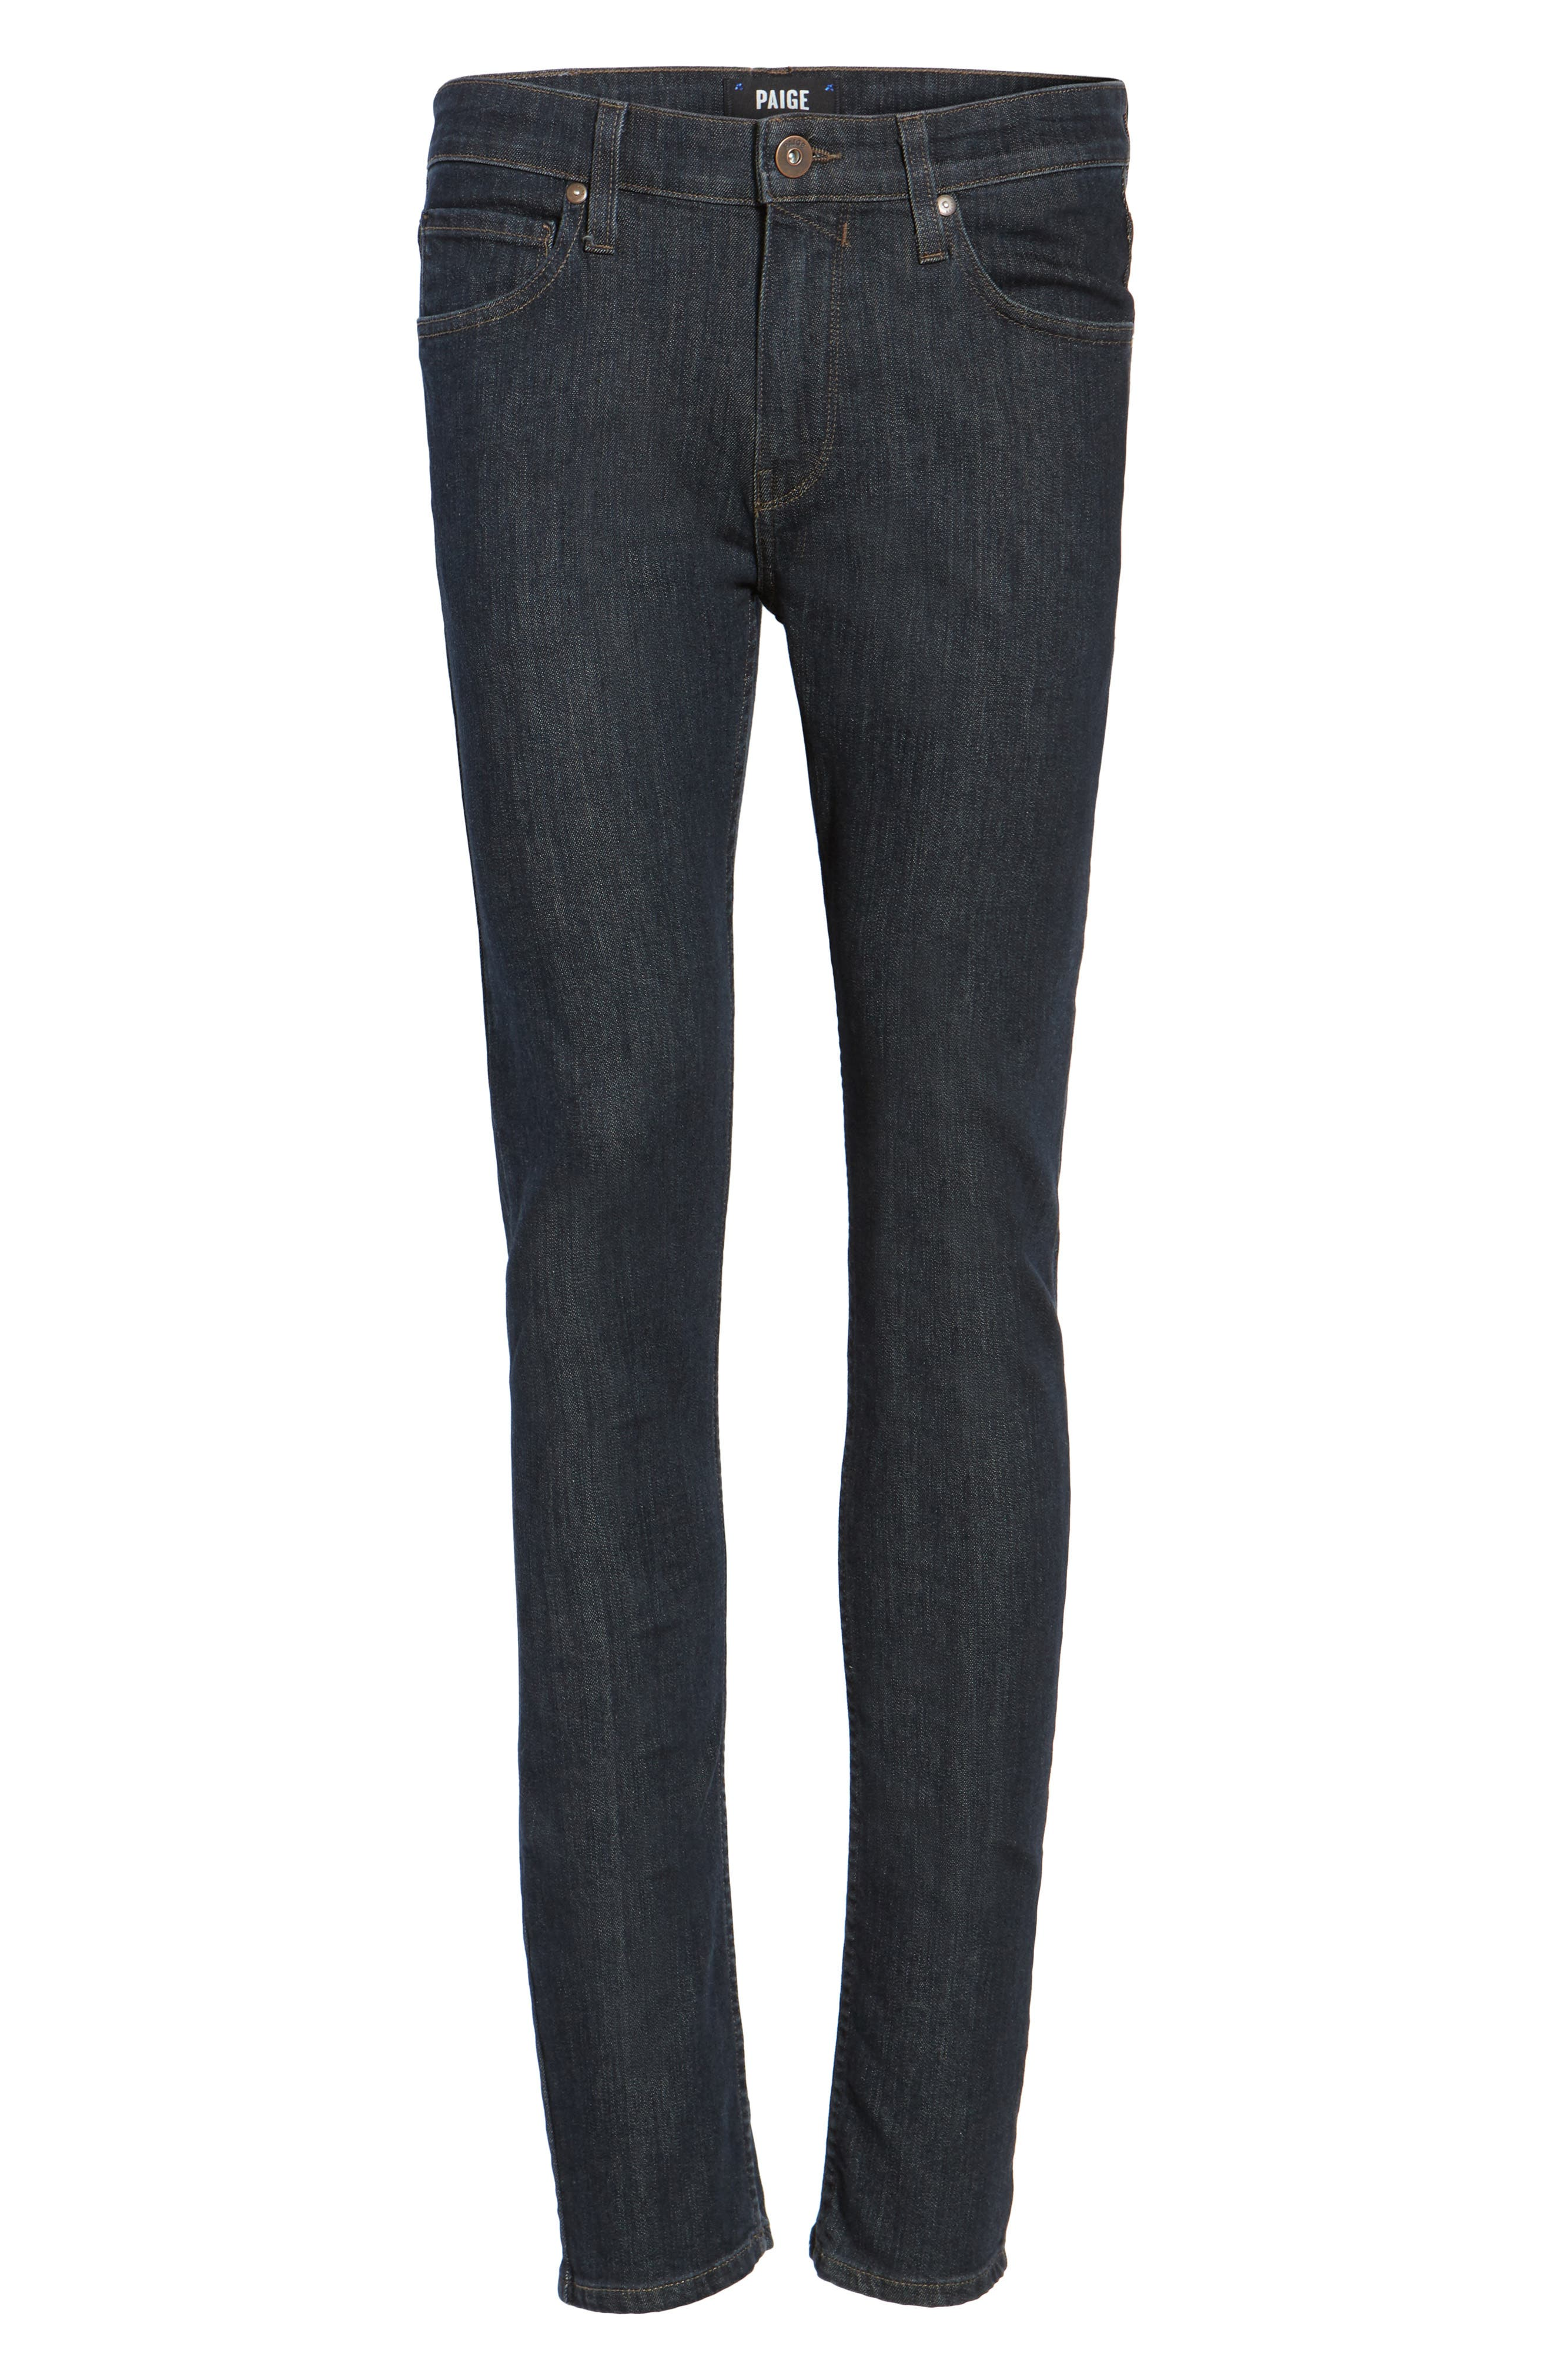 Legacy - Croft Skinny Fit Jeans,                             Alternate thumbnail 6, color,                             400